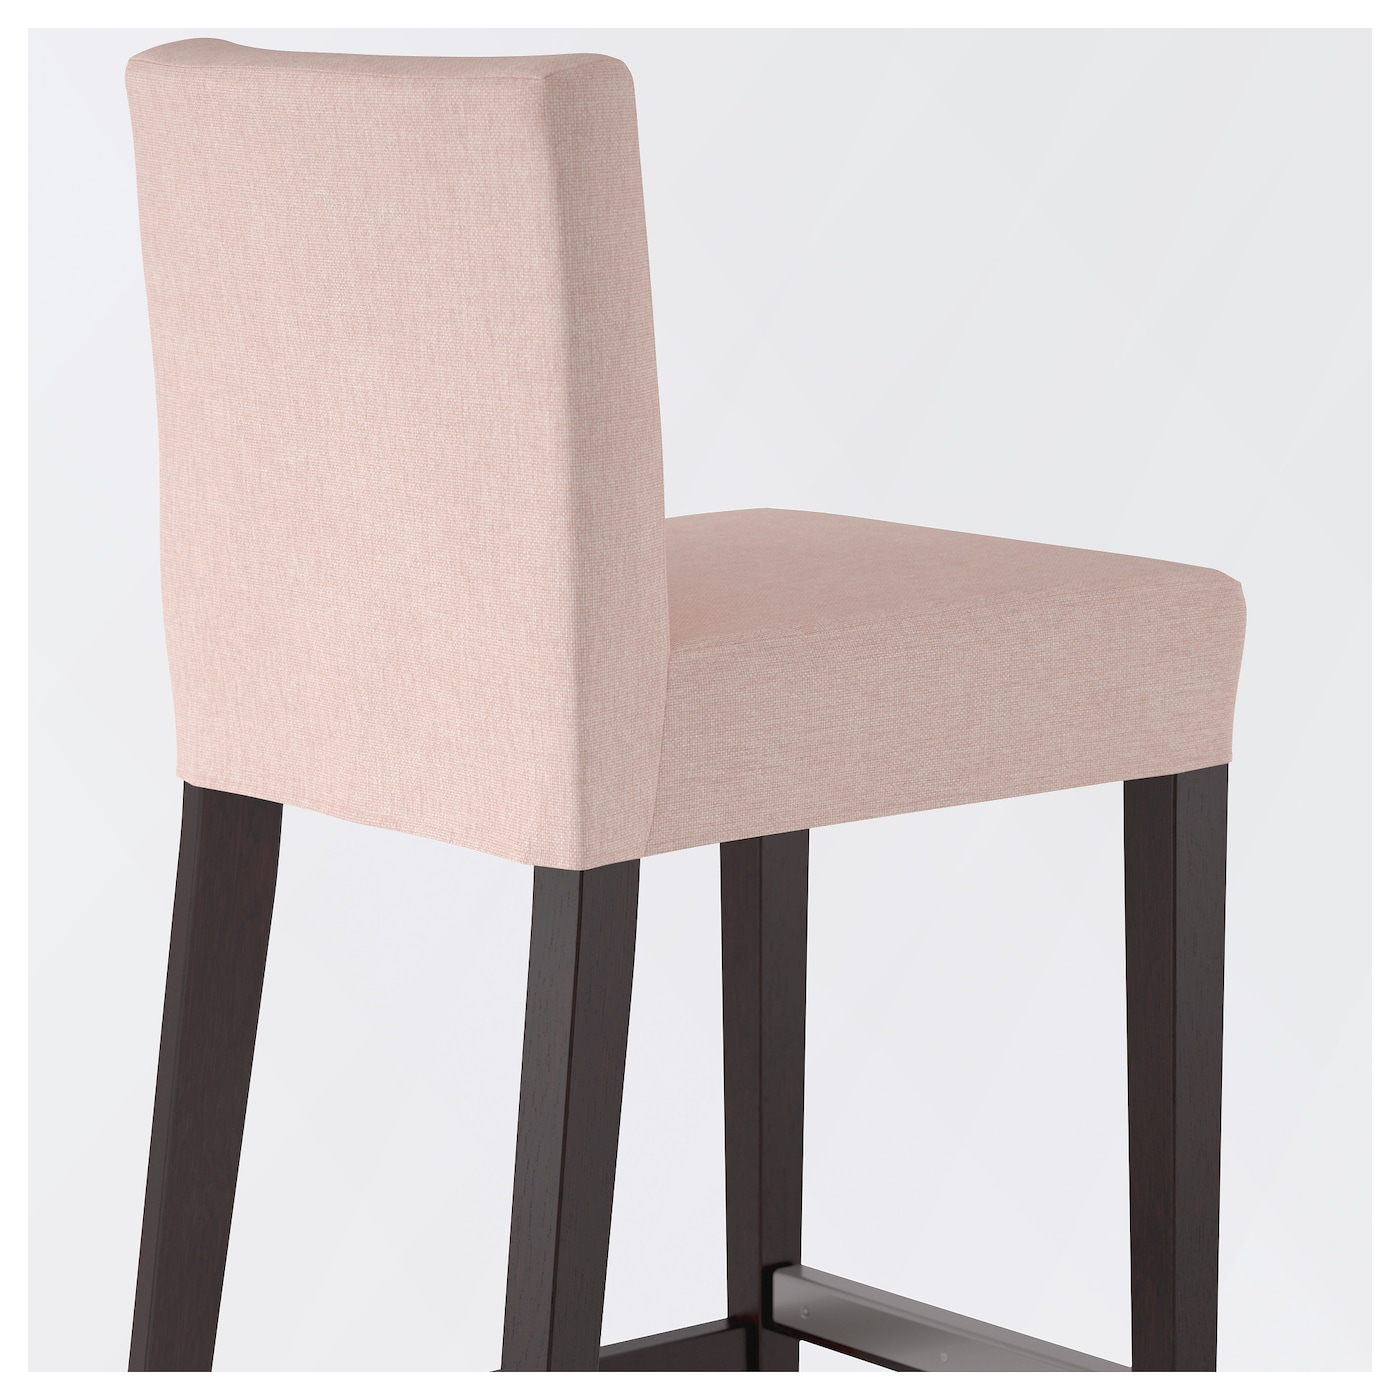 HENRIKSDAL Bar stool with backrest Brown blackgunnared  : henriksdal bar stool with backrest brown black gunnared pale pink0503490pe632708s5 from www.ikea.com size 2000 x 2000 jpeg 581kB